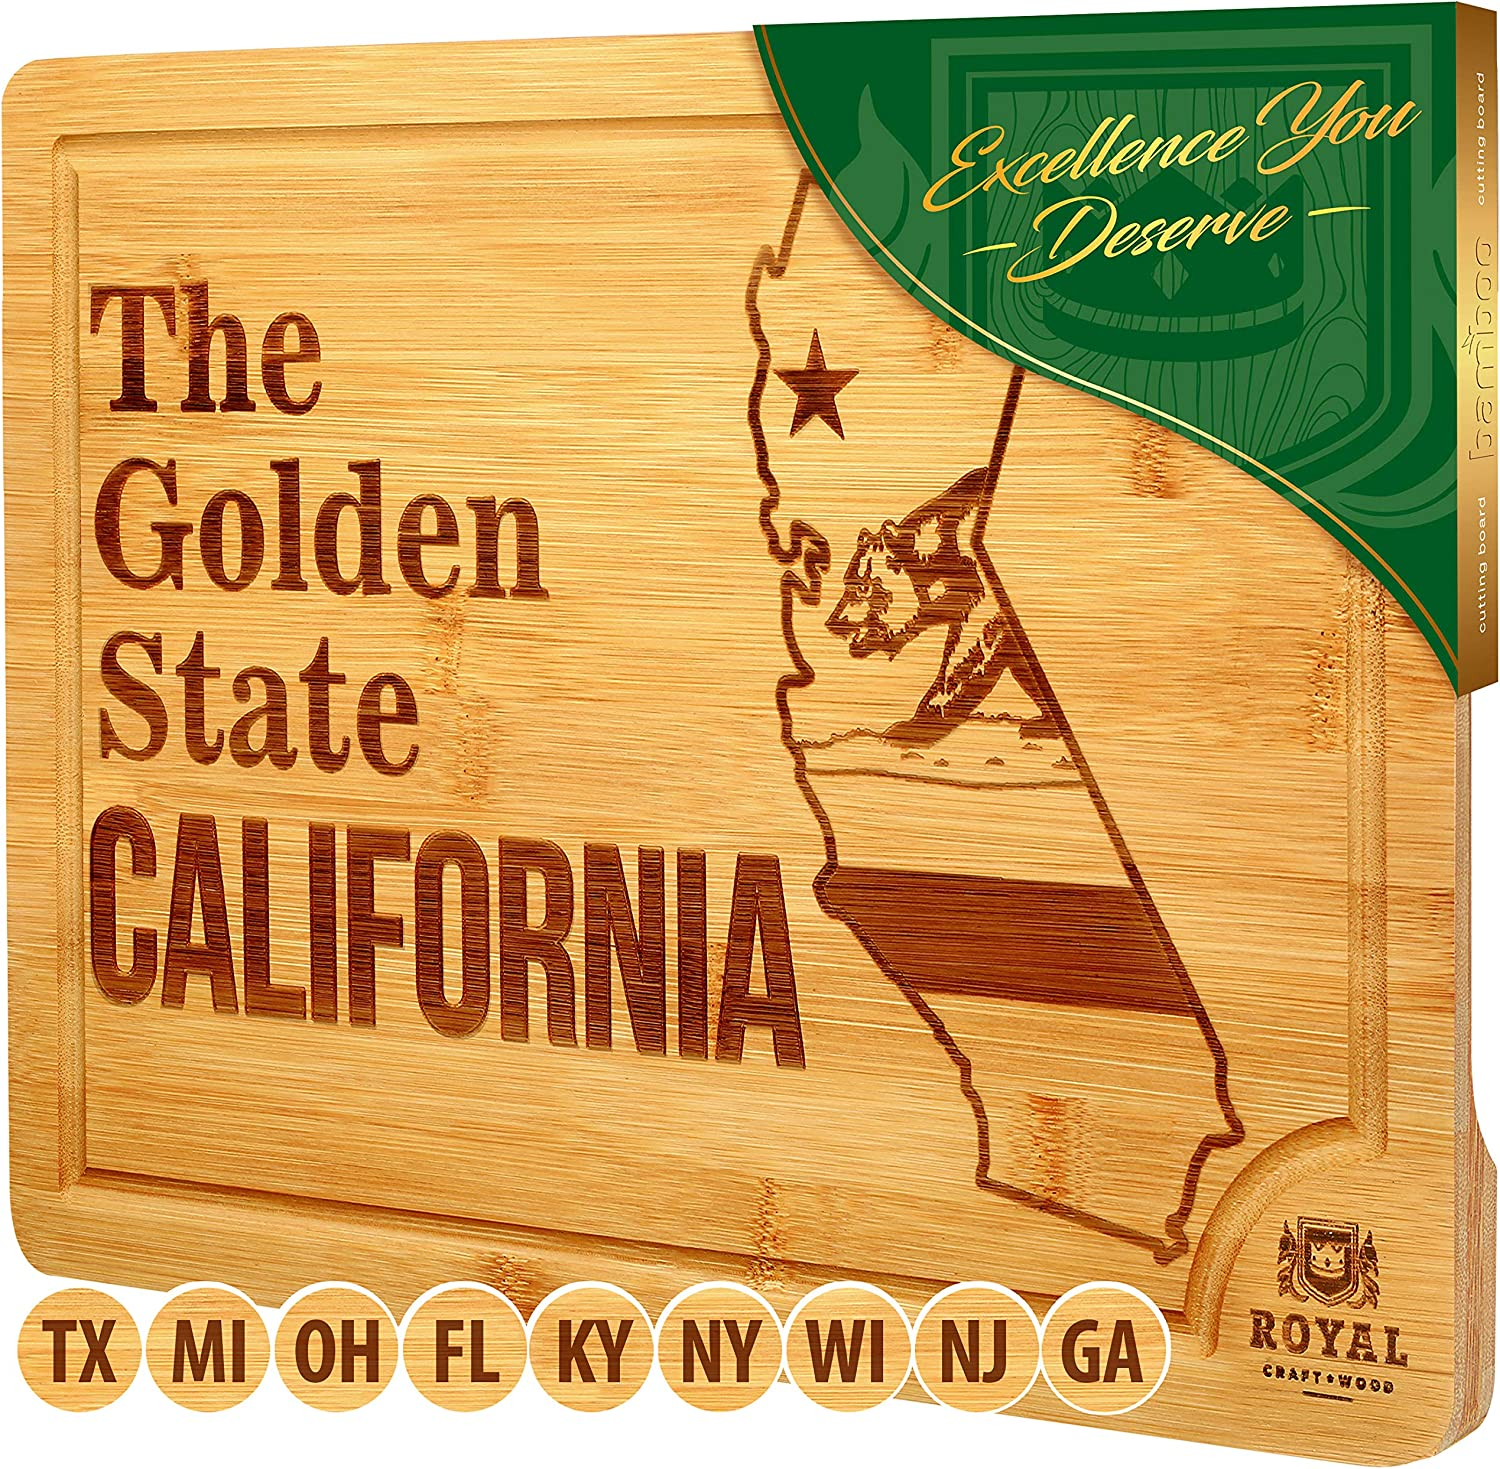 Bamboo State Cutting Board for Kitchen – California Cheese Board, Charcuterie Platter & Serving Tray, (15